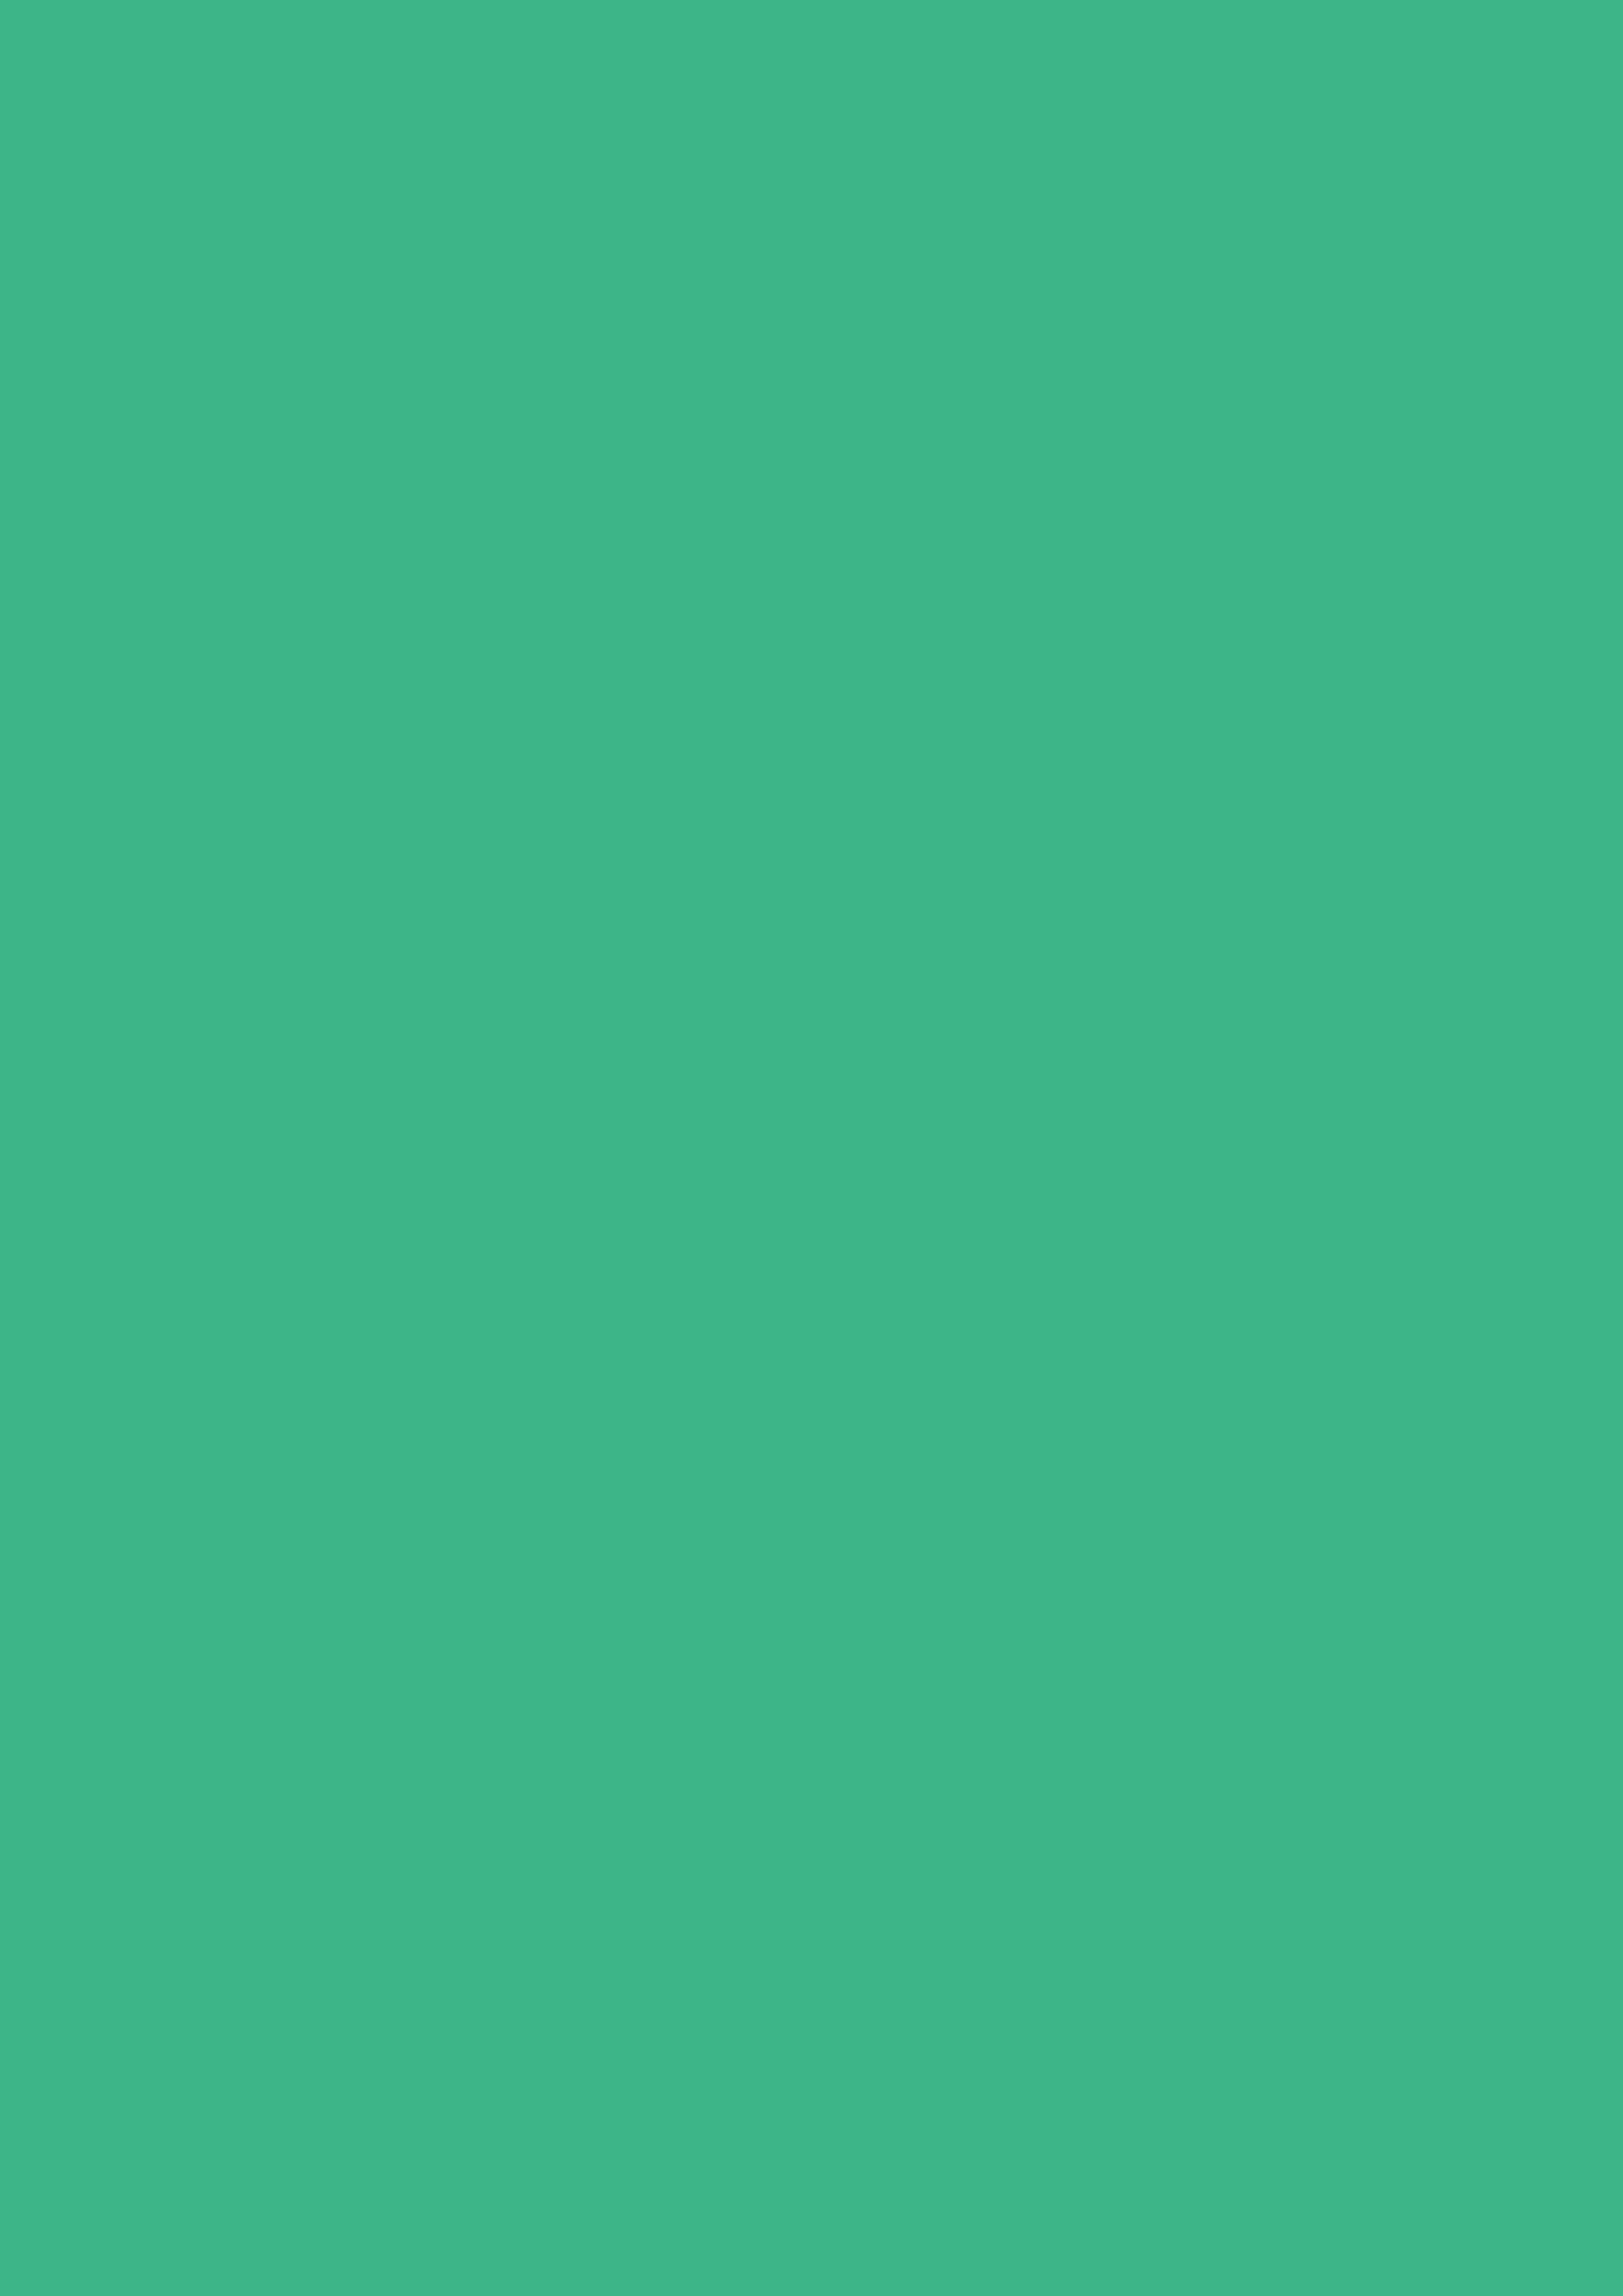 2480x3508 Mint Solid Color Background